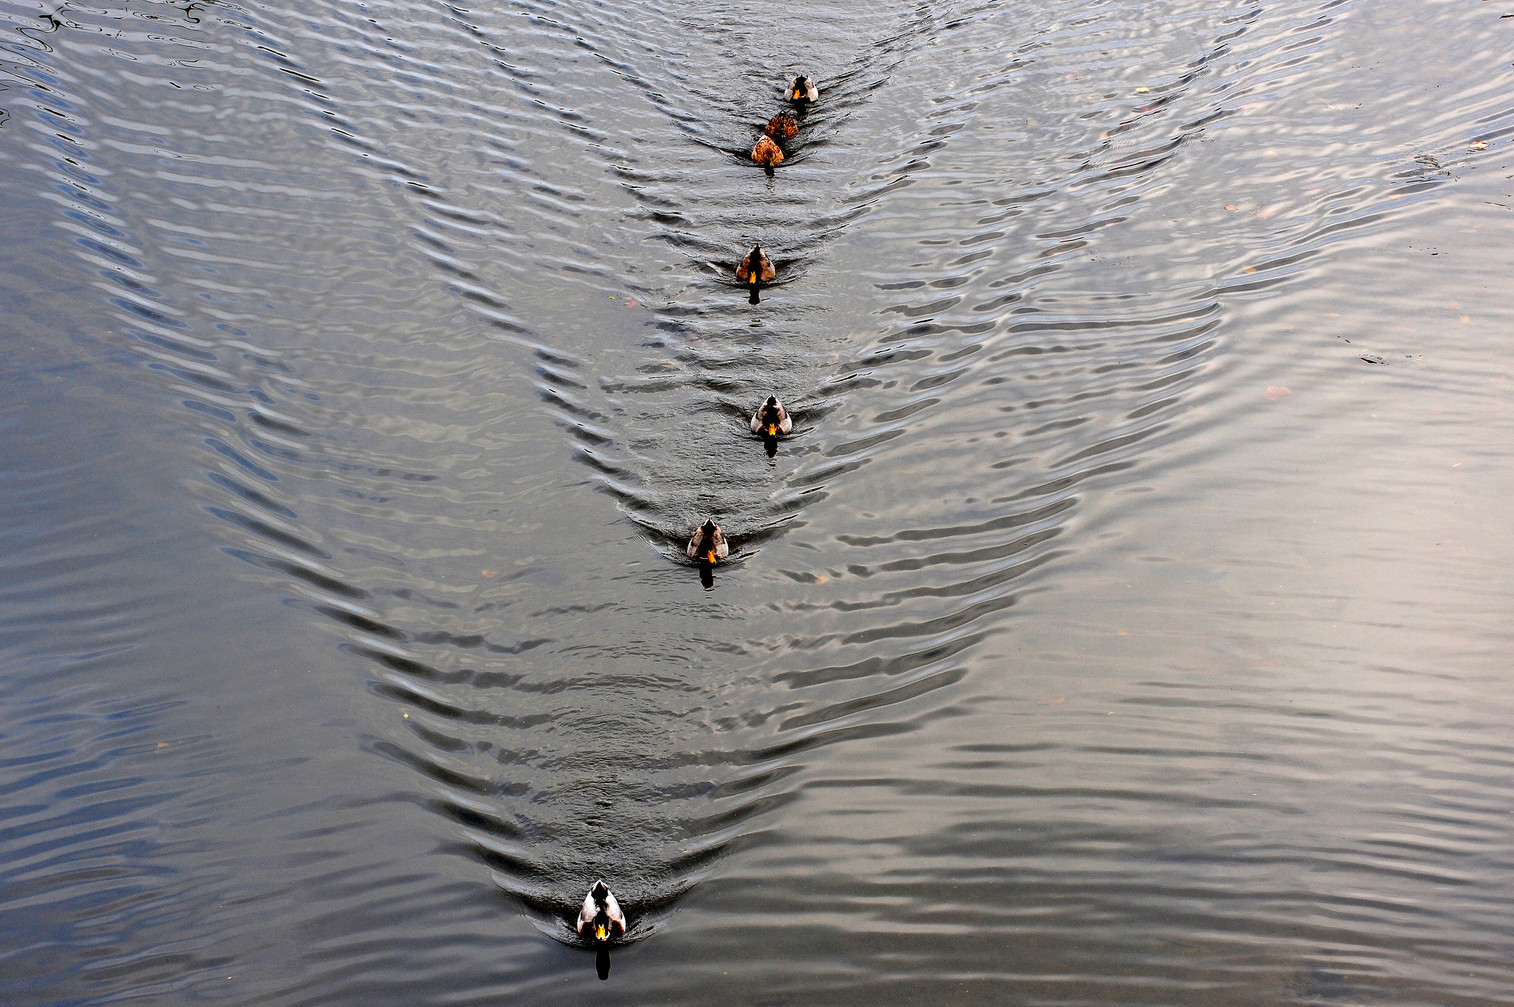 Ducks at Girona (Spain)